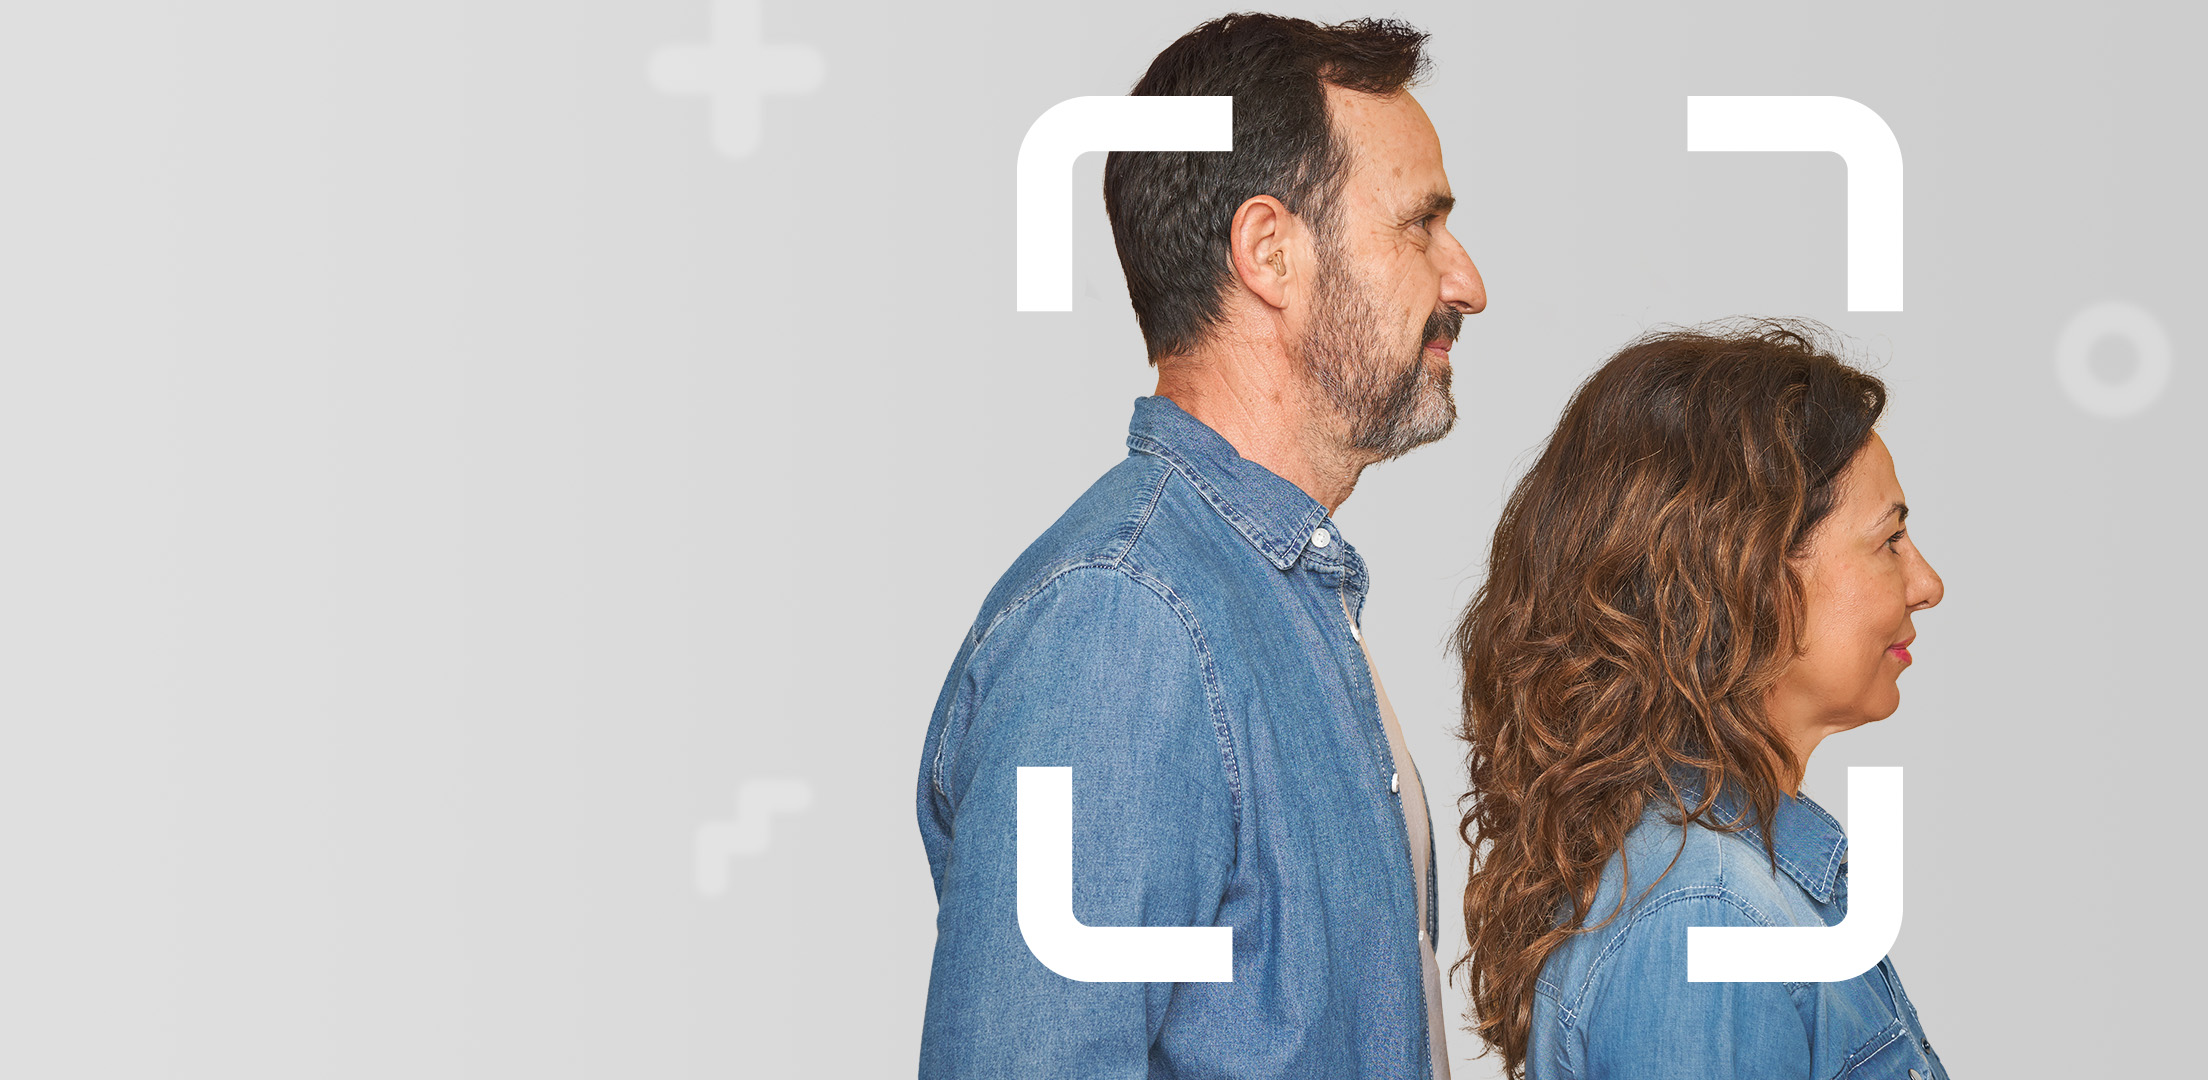 Middle aged couple facing sideways both dressed in denim focusing on their personal savings future